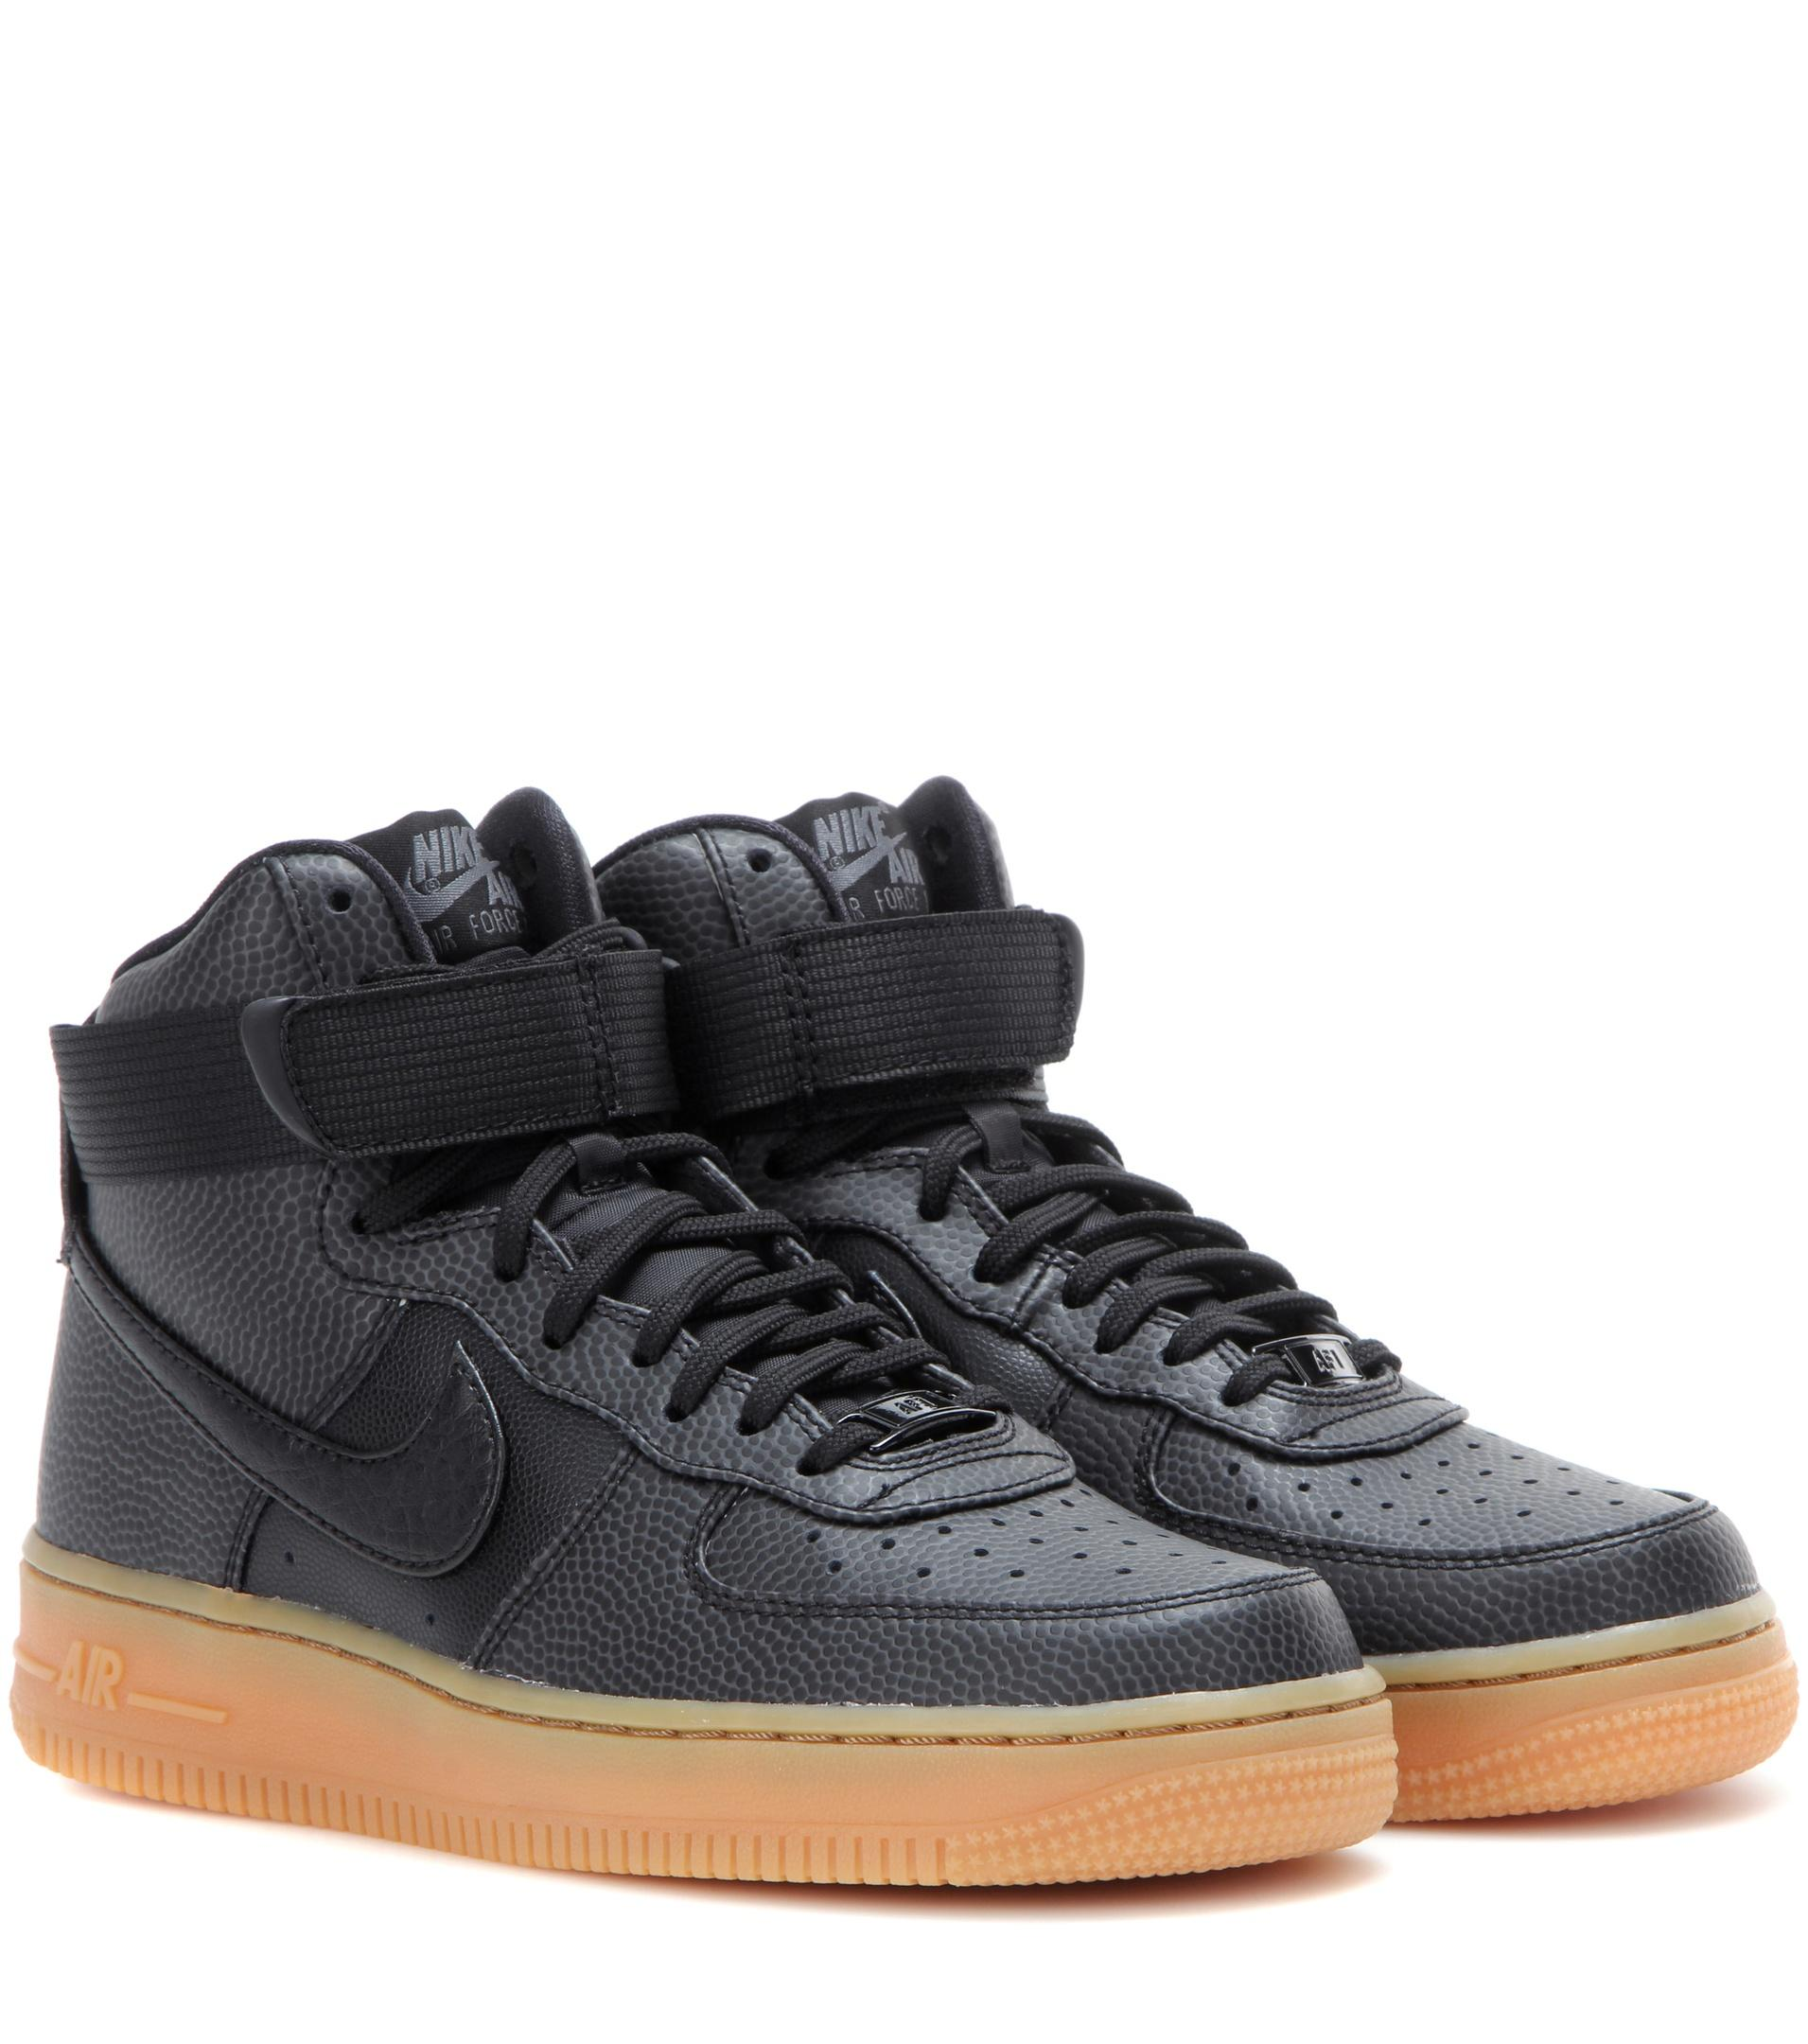 8f0b9fe491d Gallery. Previously sold at  Mytheresa · Women s Nike Air Force ...